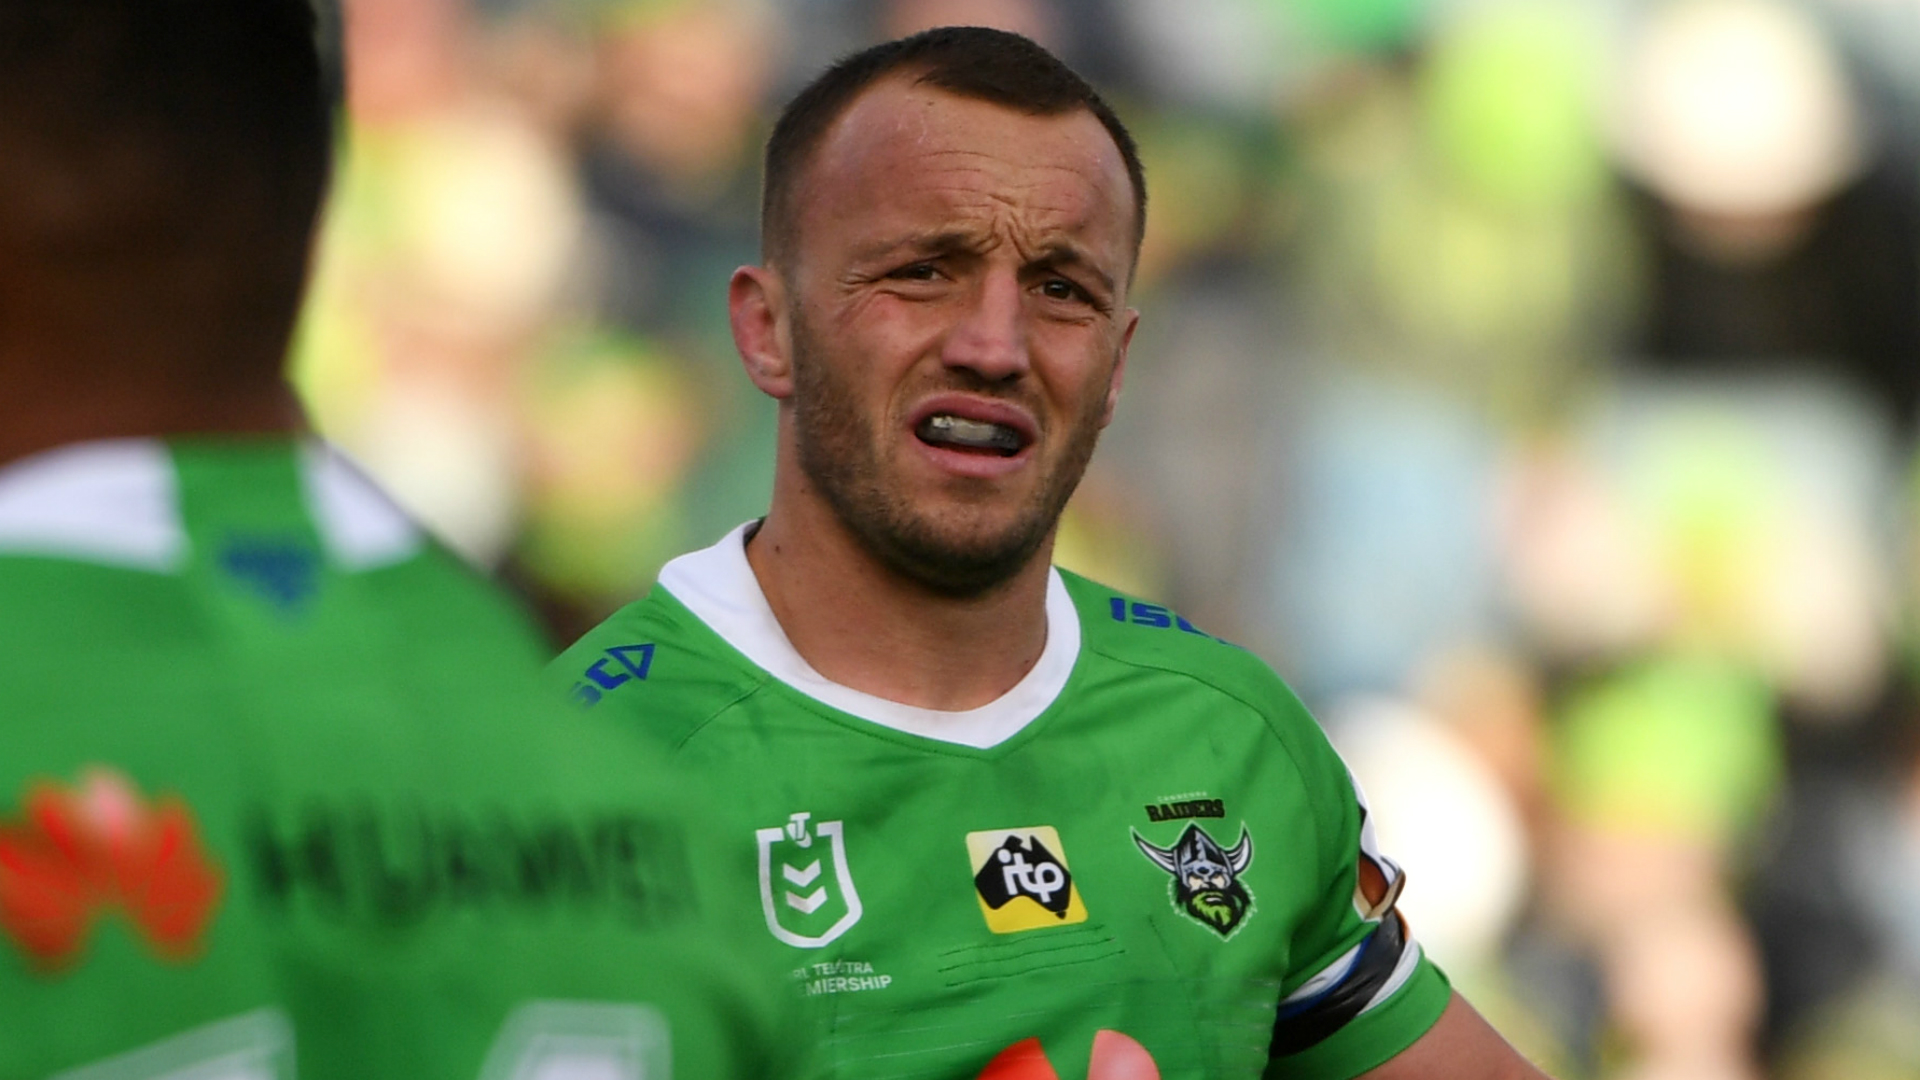 Josh Hodgson is unsure what the future holds for NRL players amid the COVID-19 crisis, which has brought sport to a standstill.